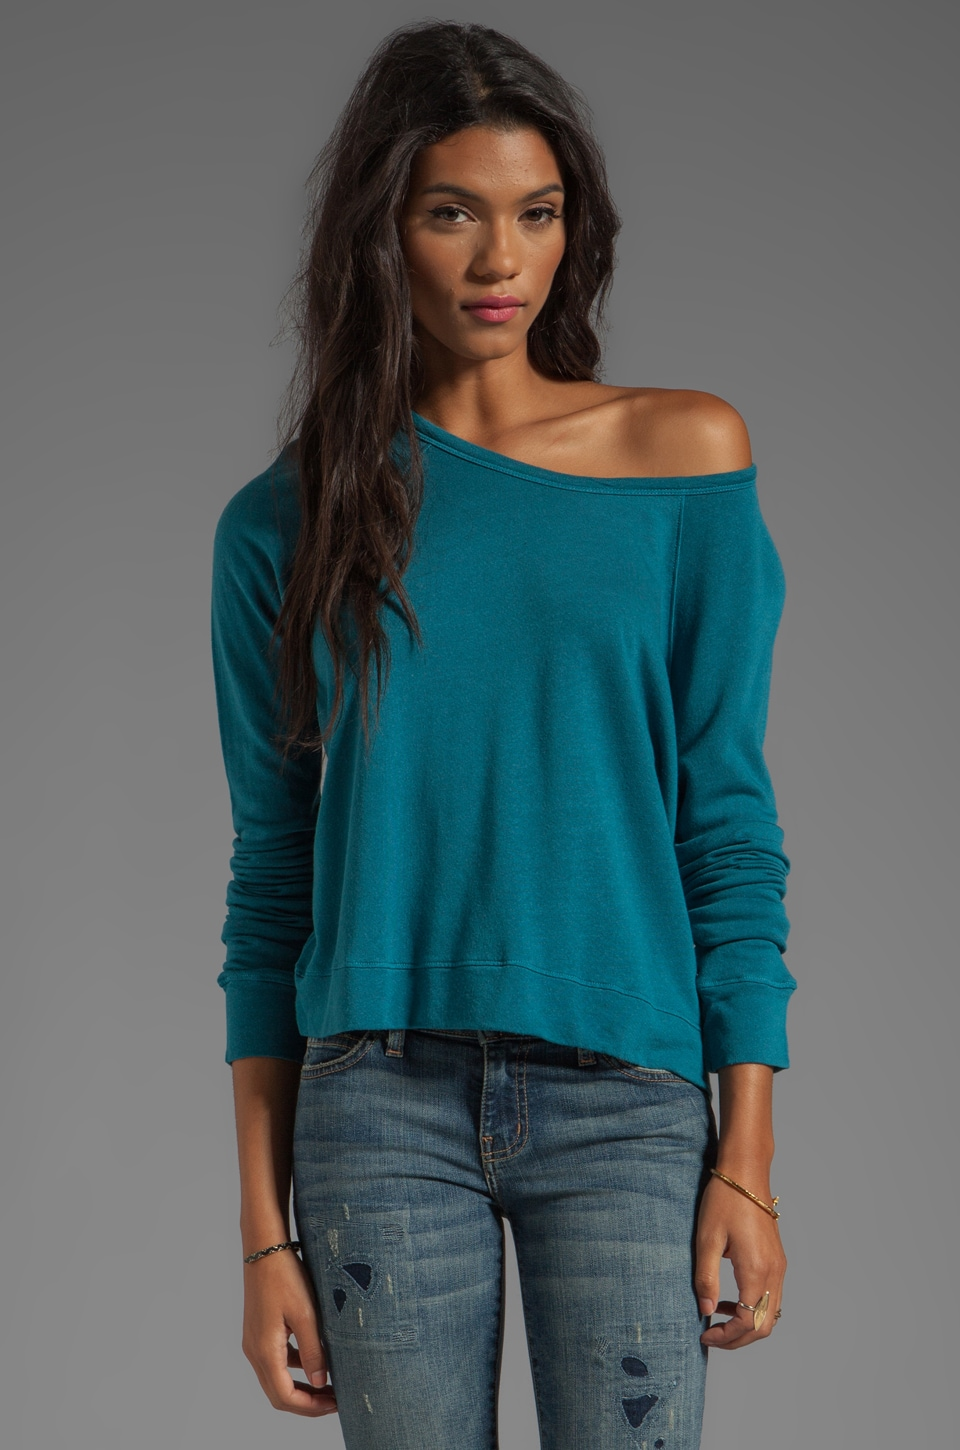 SUNDRY Cropped Pullover in Peacock